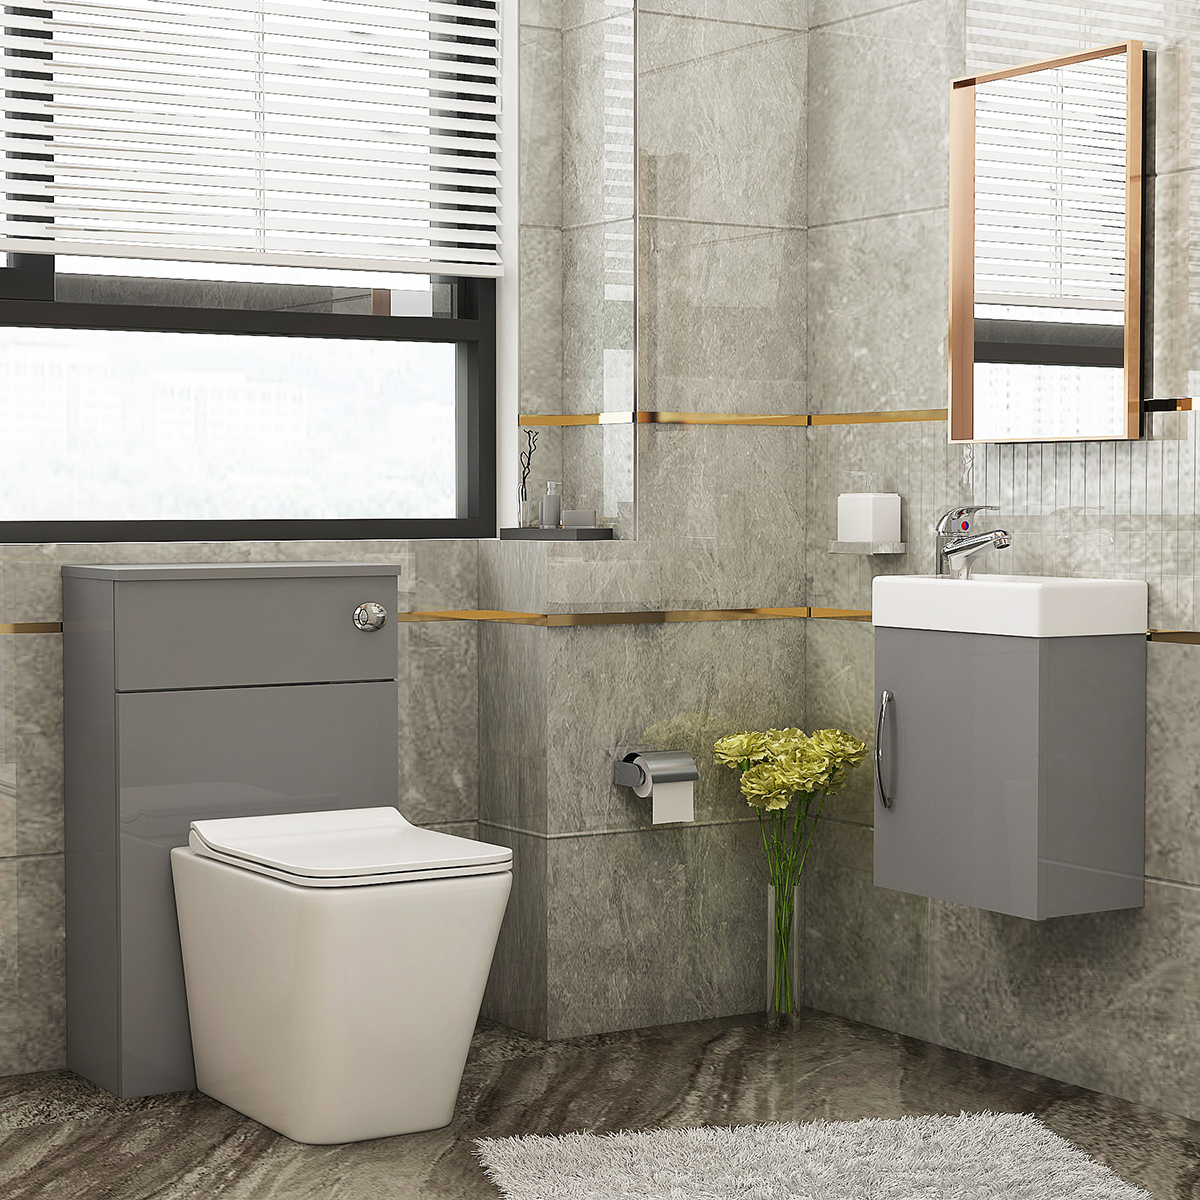 5 Ways to Make Your Bathroom Without Windows Look Bright and Beautiful